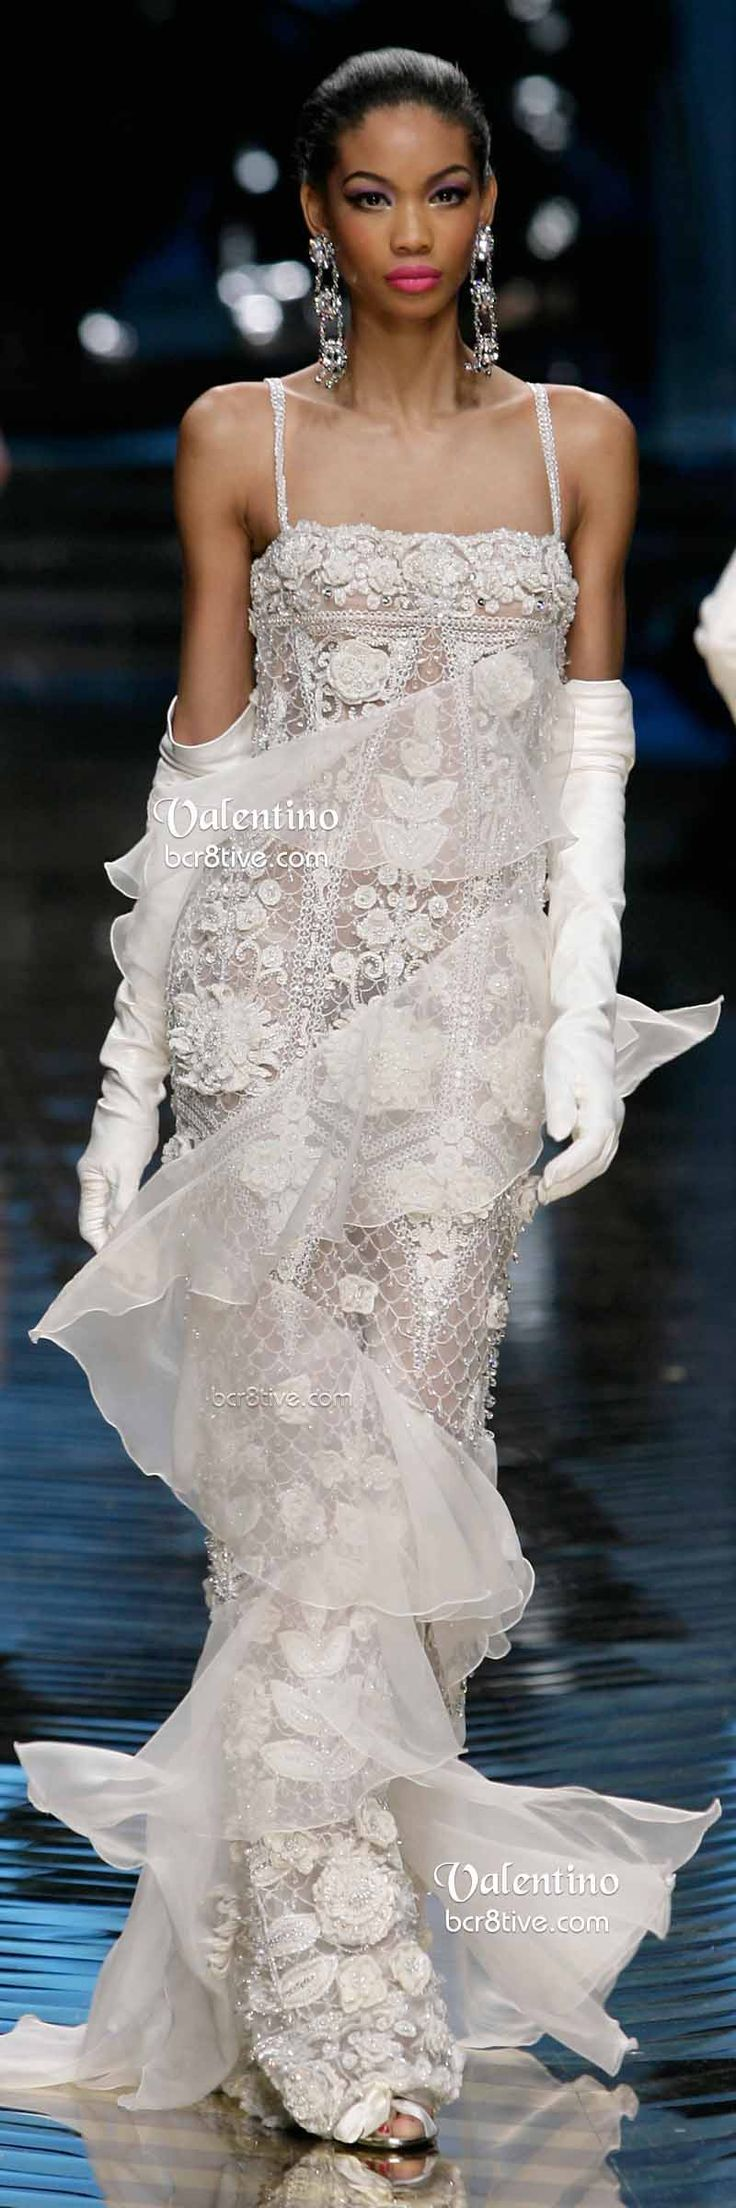 Exquisite Valentino Lace Evening Gown - Farewell Valentino Show 2014